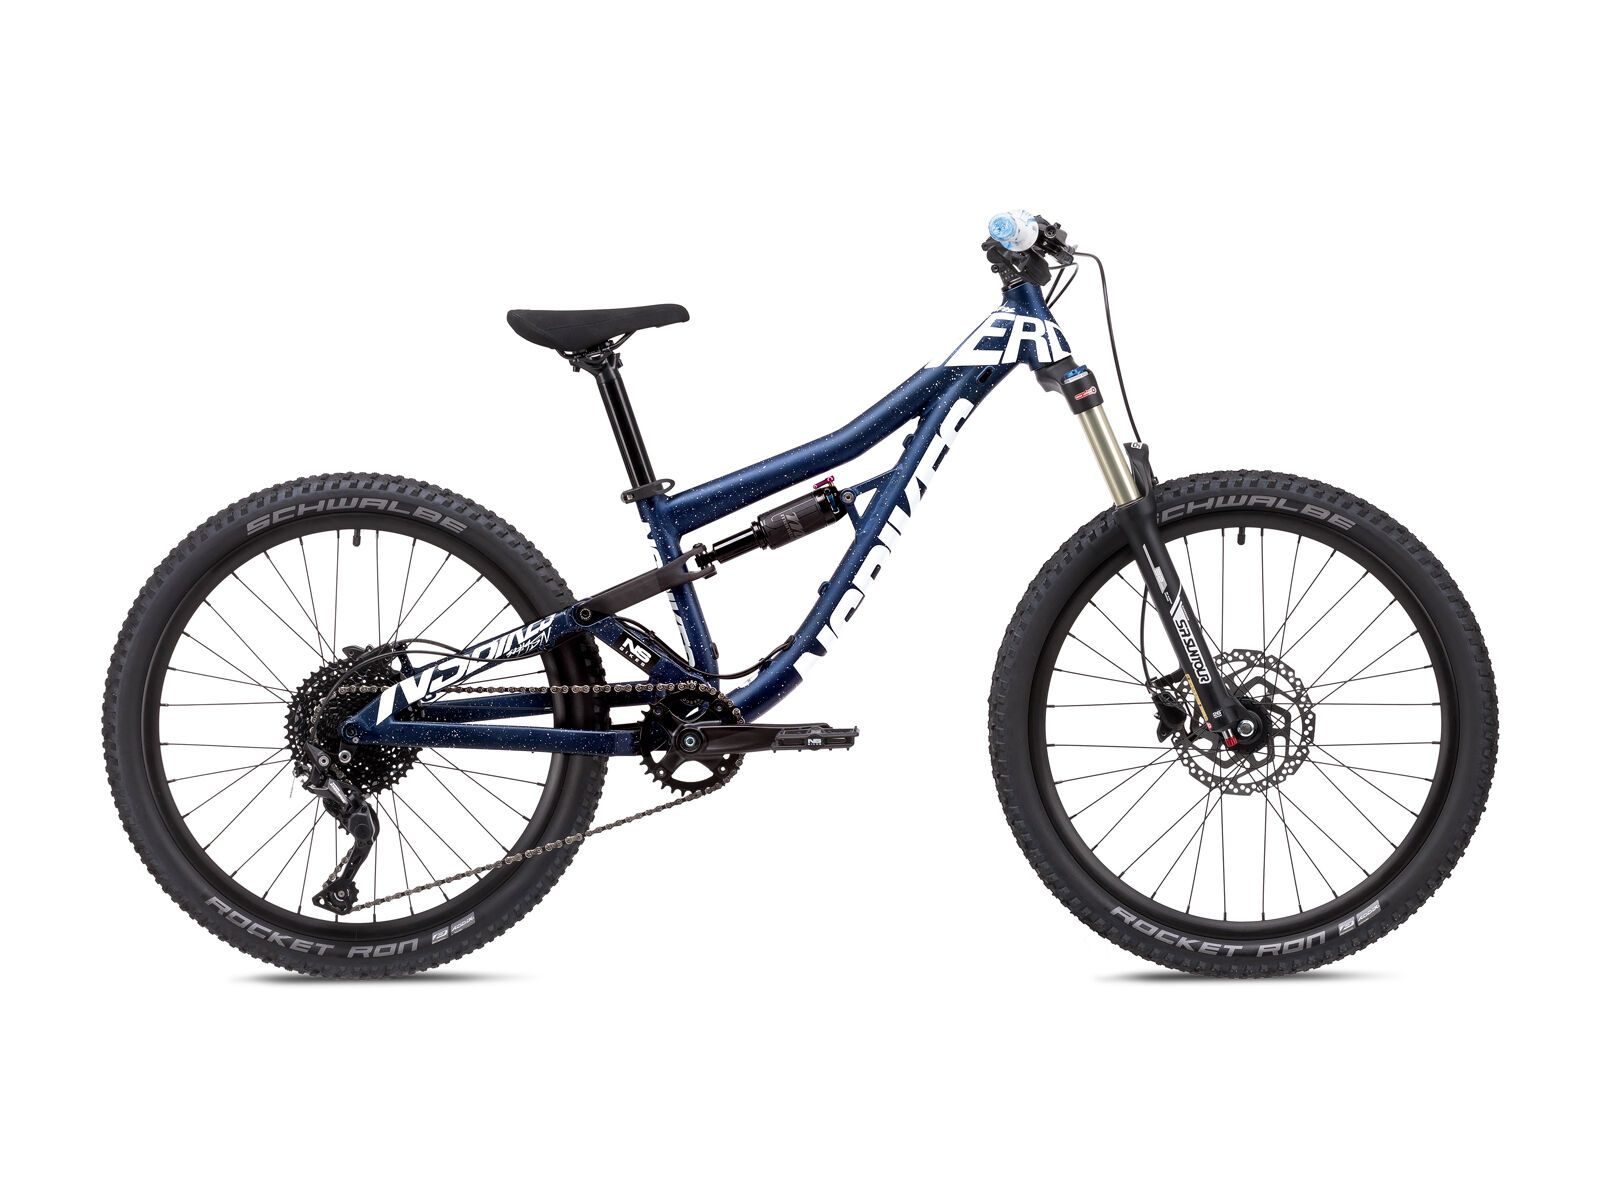 NS Bikes Nerd JR night sky 2021 31.1 cm BI-NSB-2023-989-unis